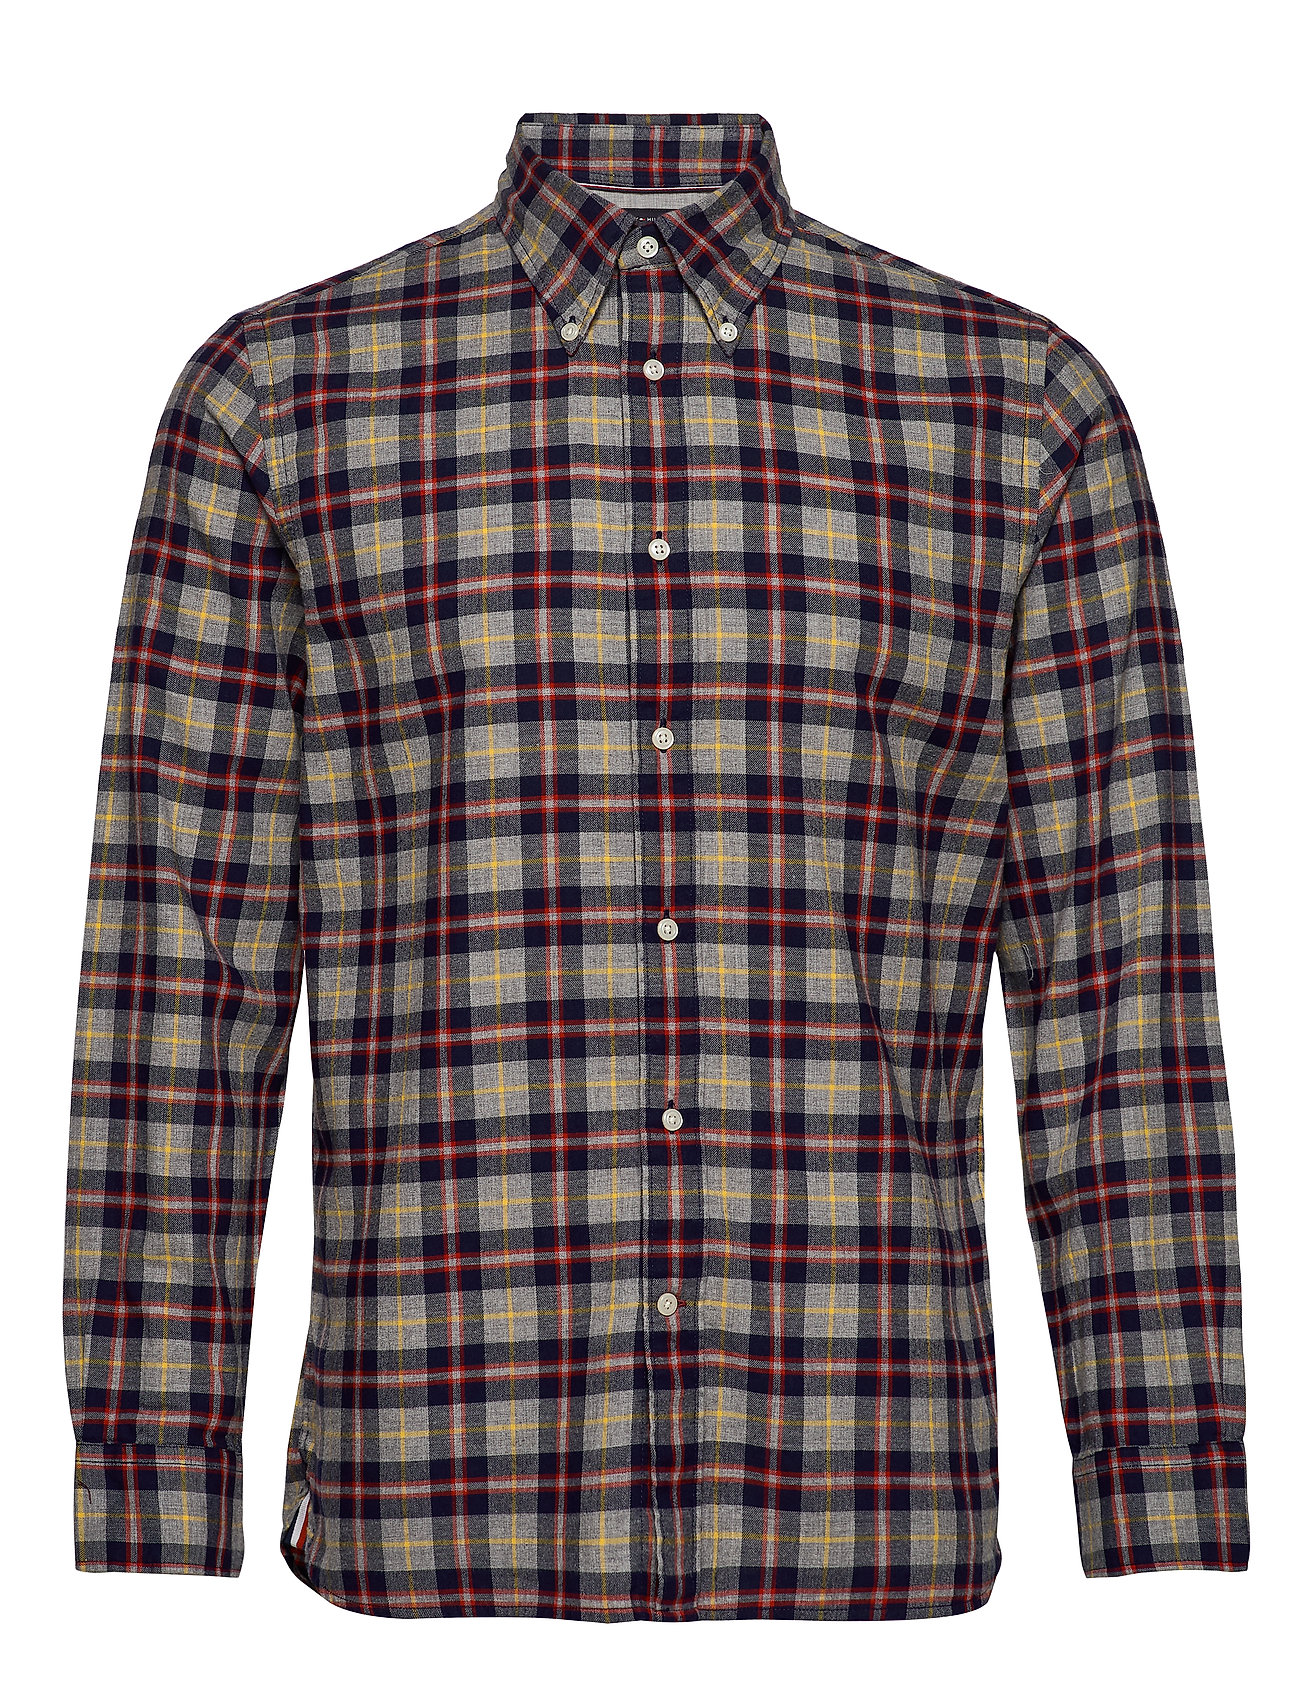 Tommy Hilfiger MULTI COLOR TARTAN SHIRT - CLOUD HTR / MARITIME BLUE / MU